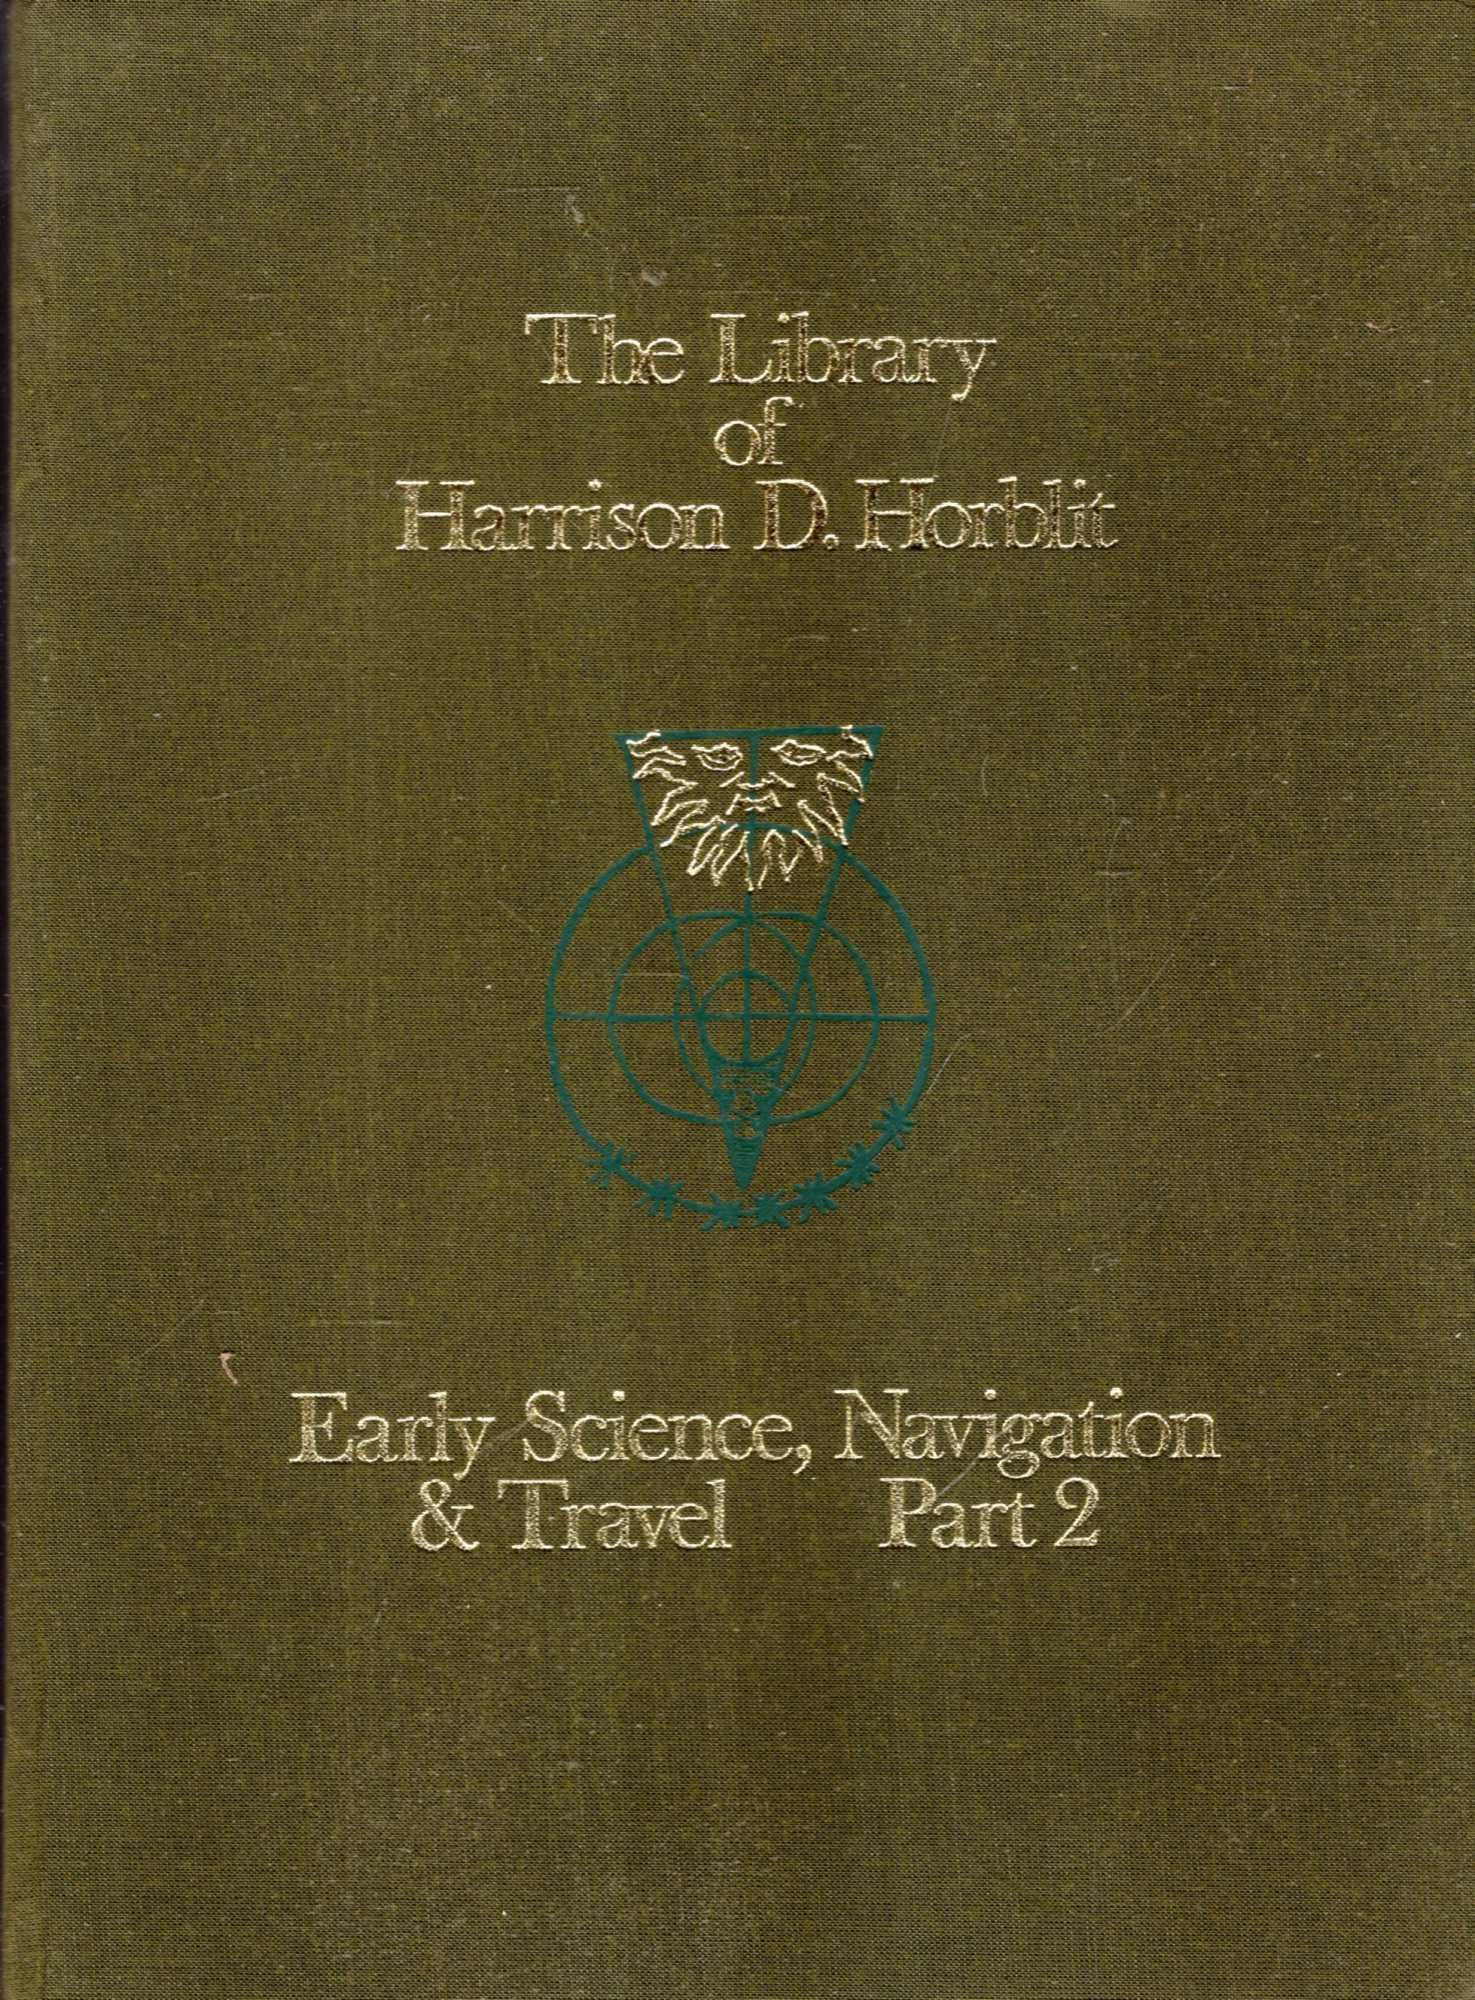 Image for The Celebrated Library of Harrison D Horbelt, Parts 1 & 2 : Early Science Navigation & Travel with a few medical books : A-C & D-G - 10/11 June 1974